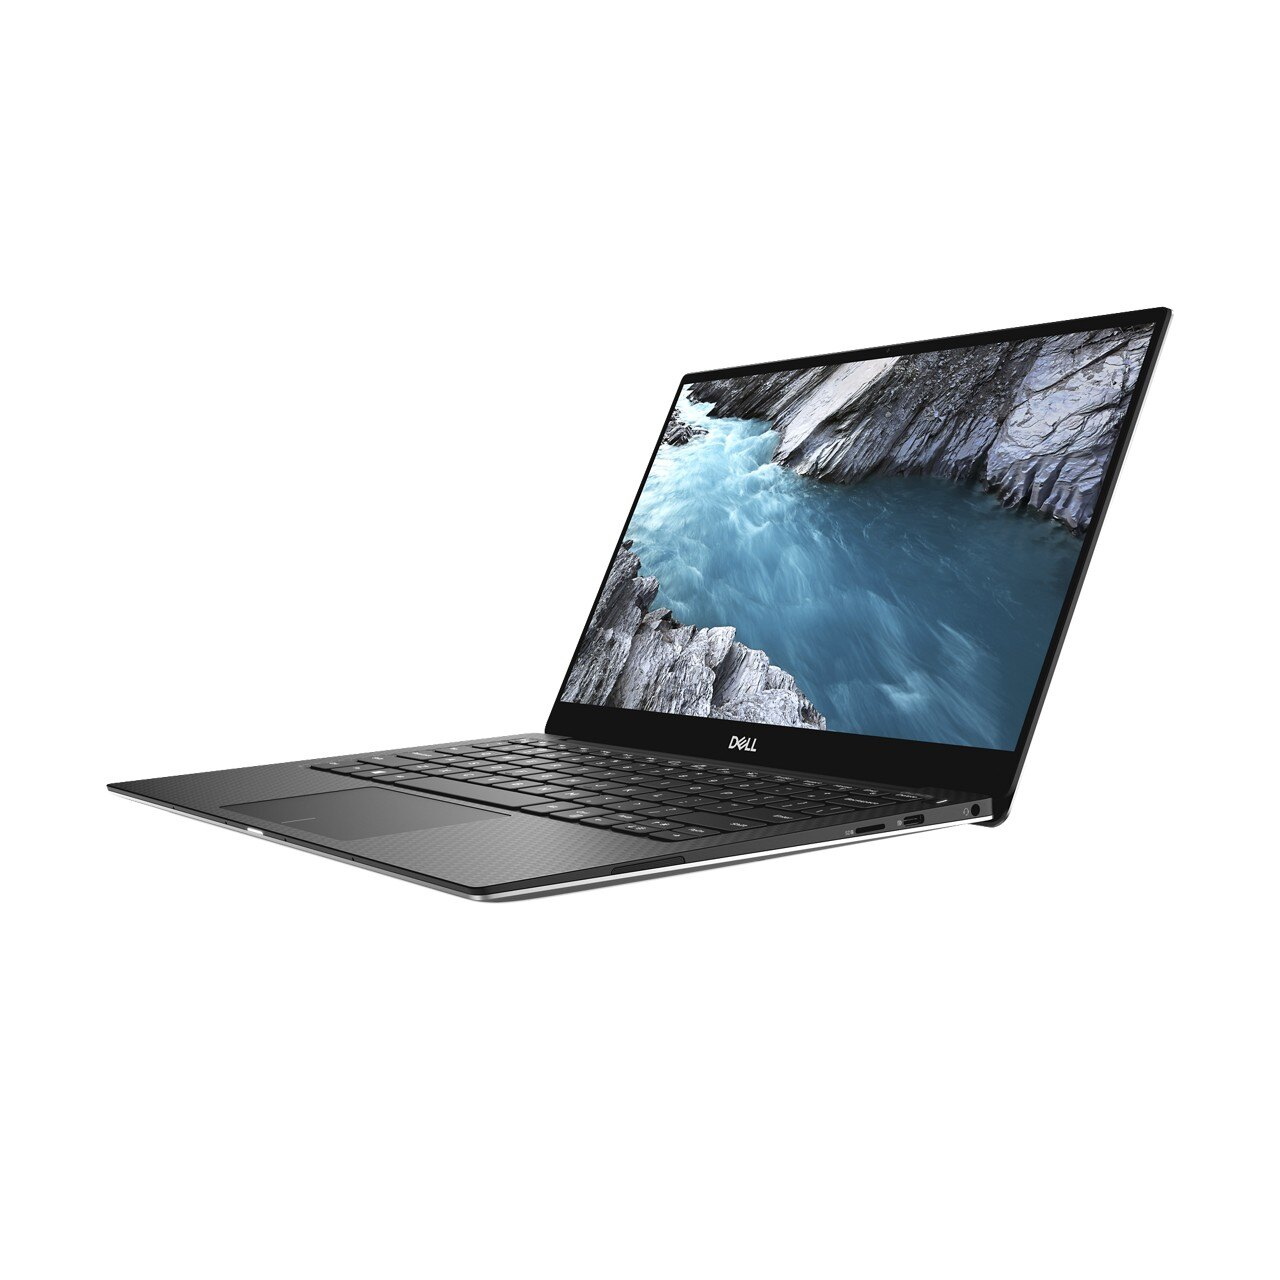 "Dell XPS 13 13.3"" FHD Laptop (i5/ 8GB / 256GB SSD) + 30% Rakuten Credit"